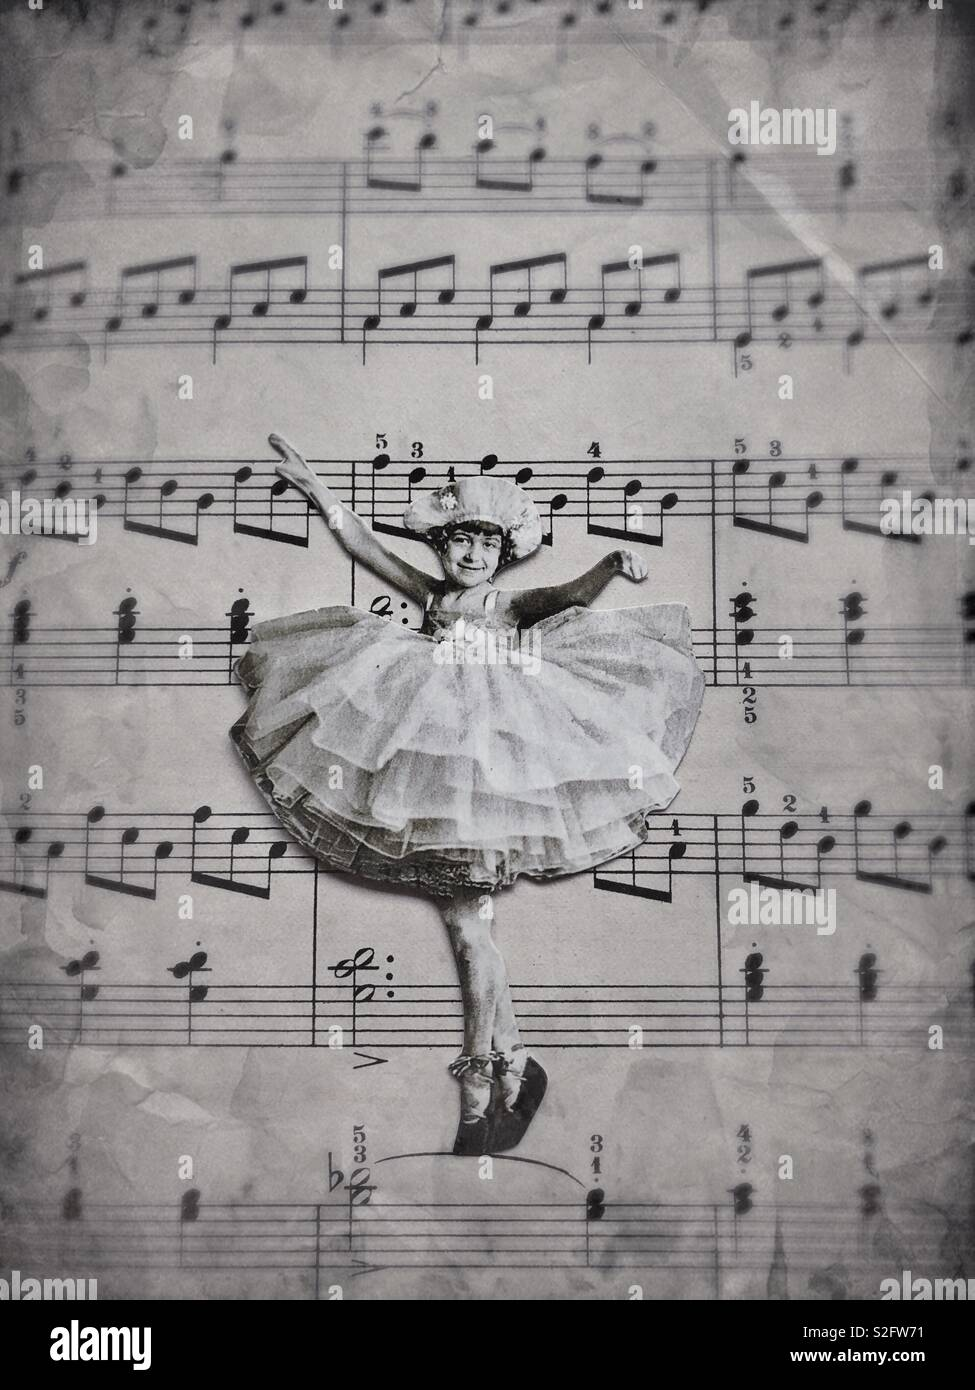 Vintage style surreal collage of a little girl dancing on sheet music. - Stock Image